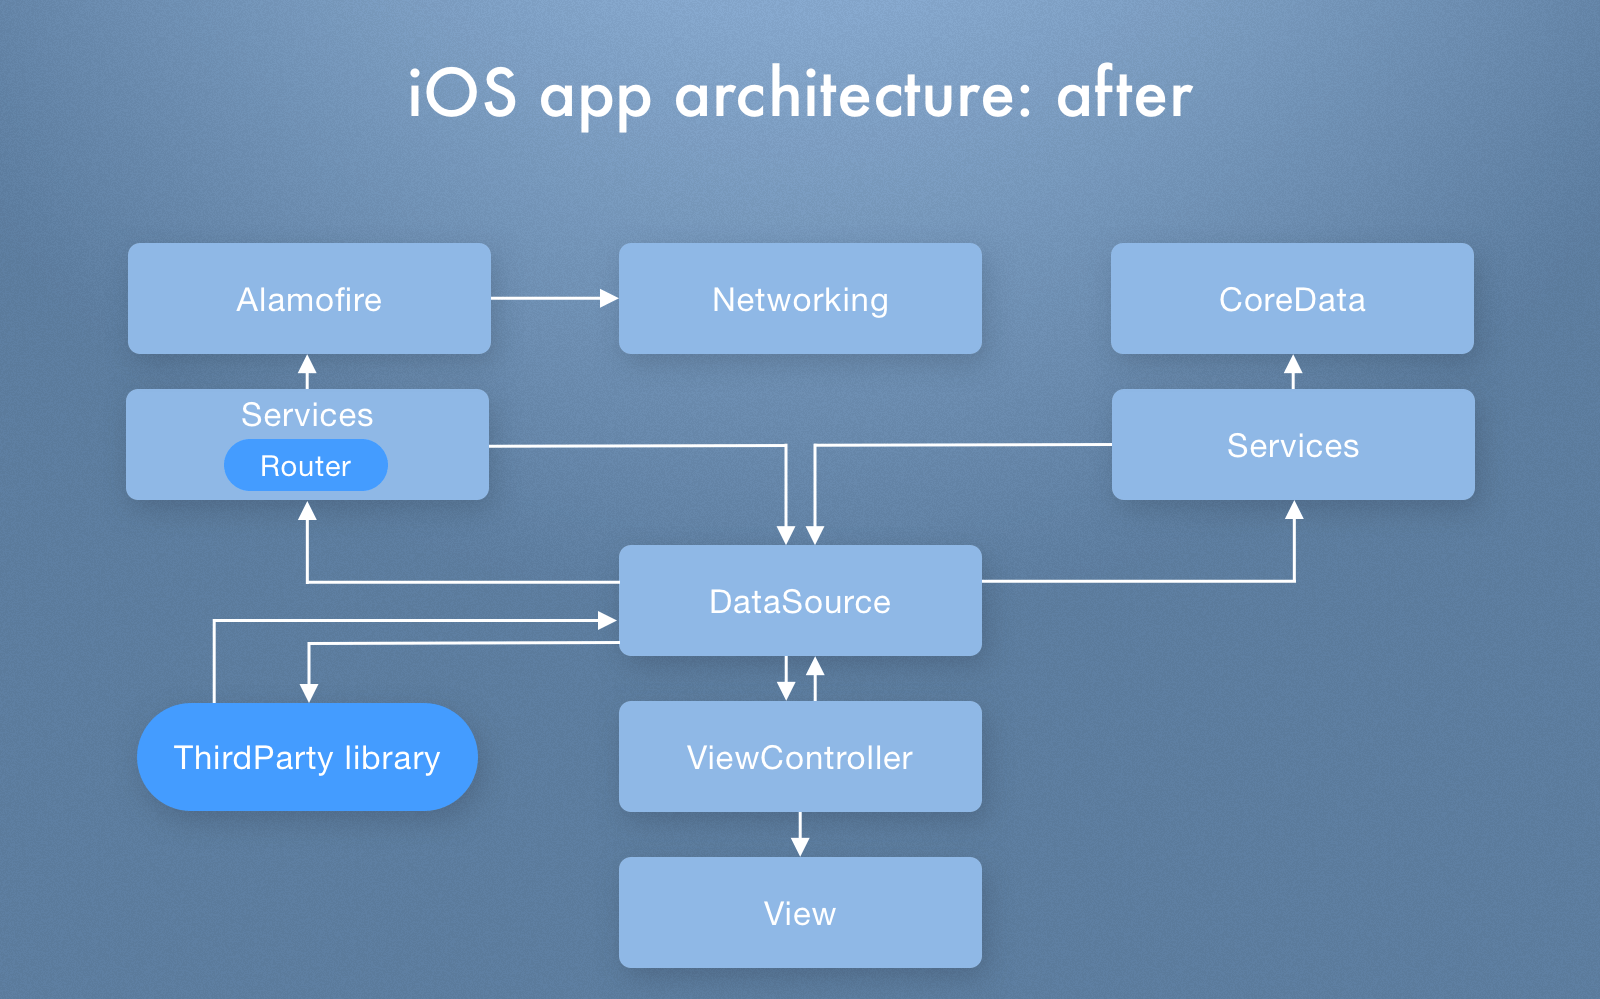 iOS app architecture after